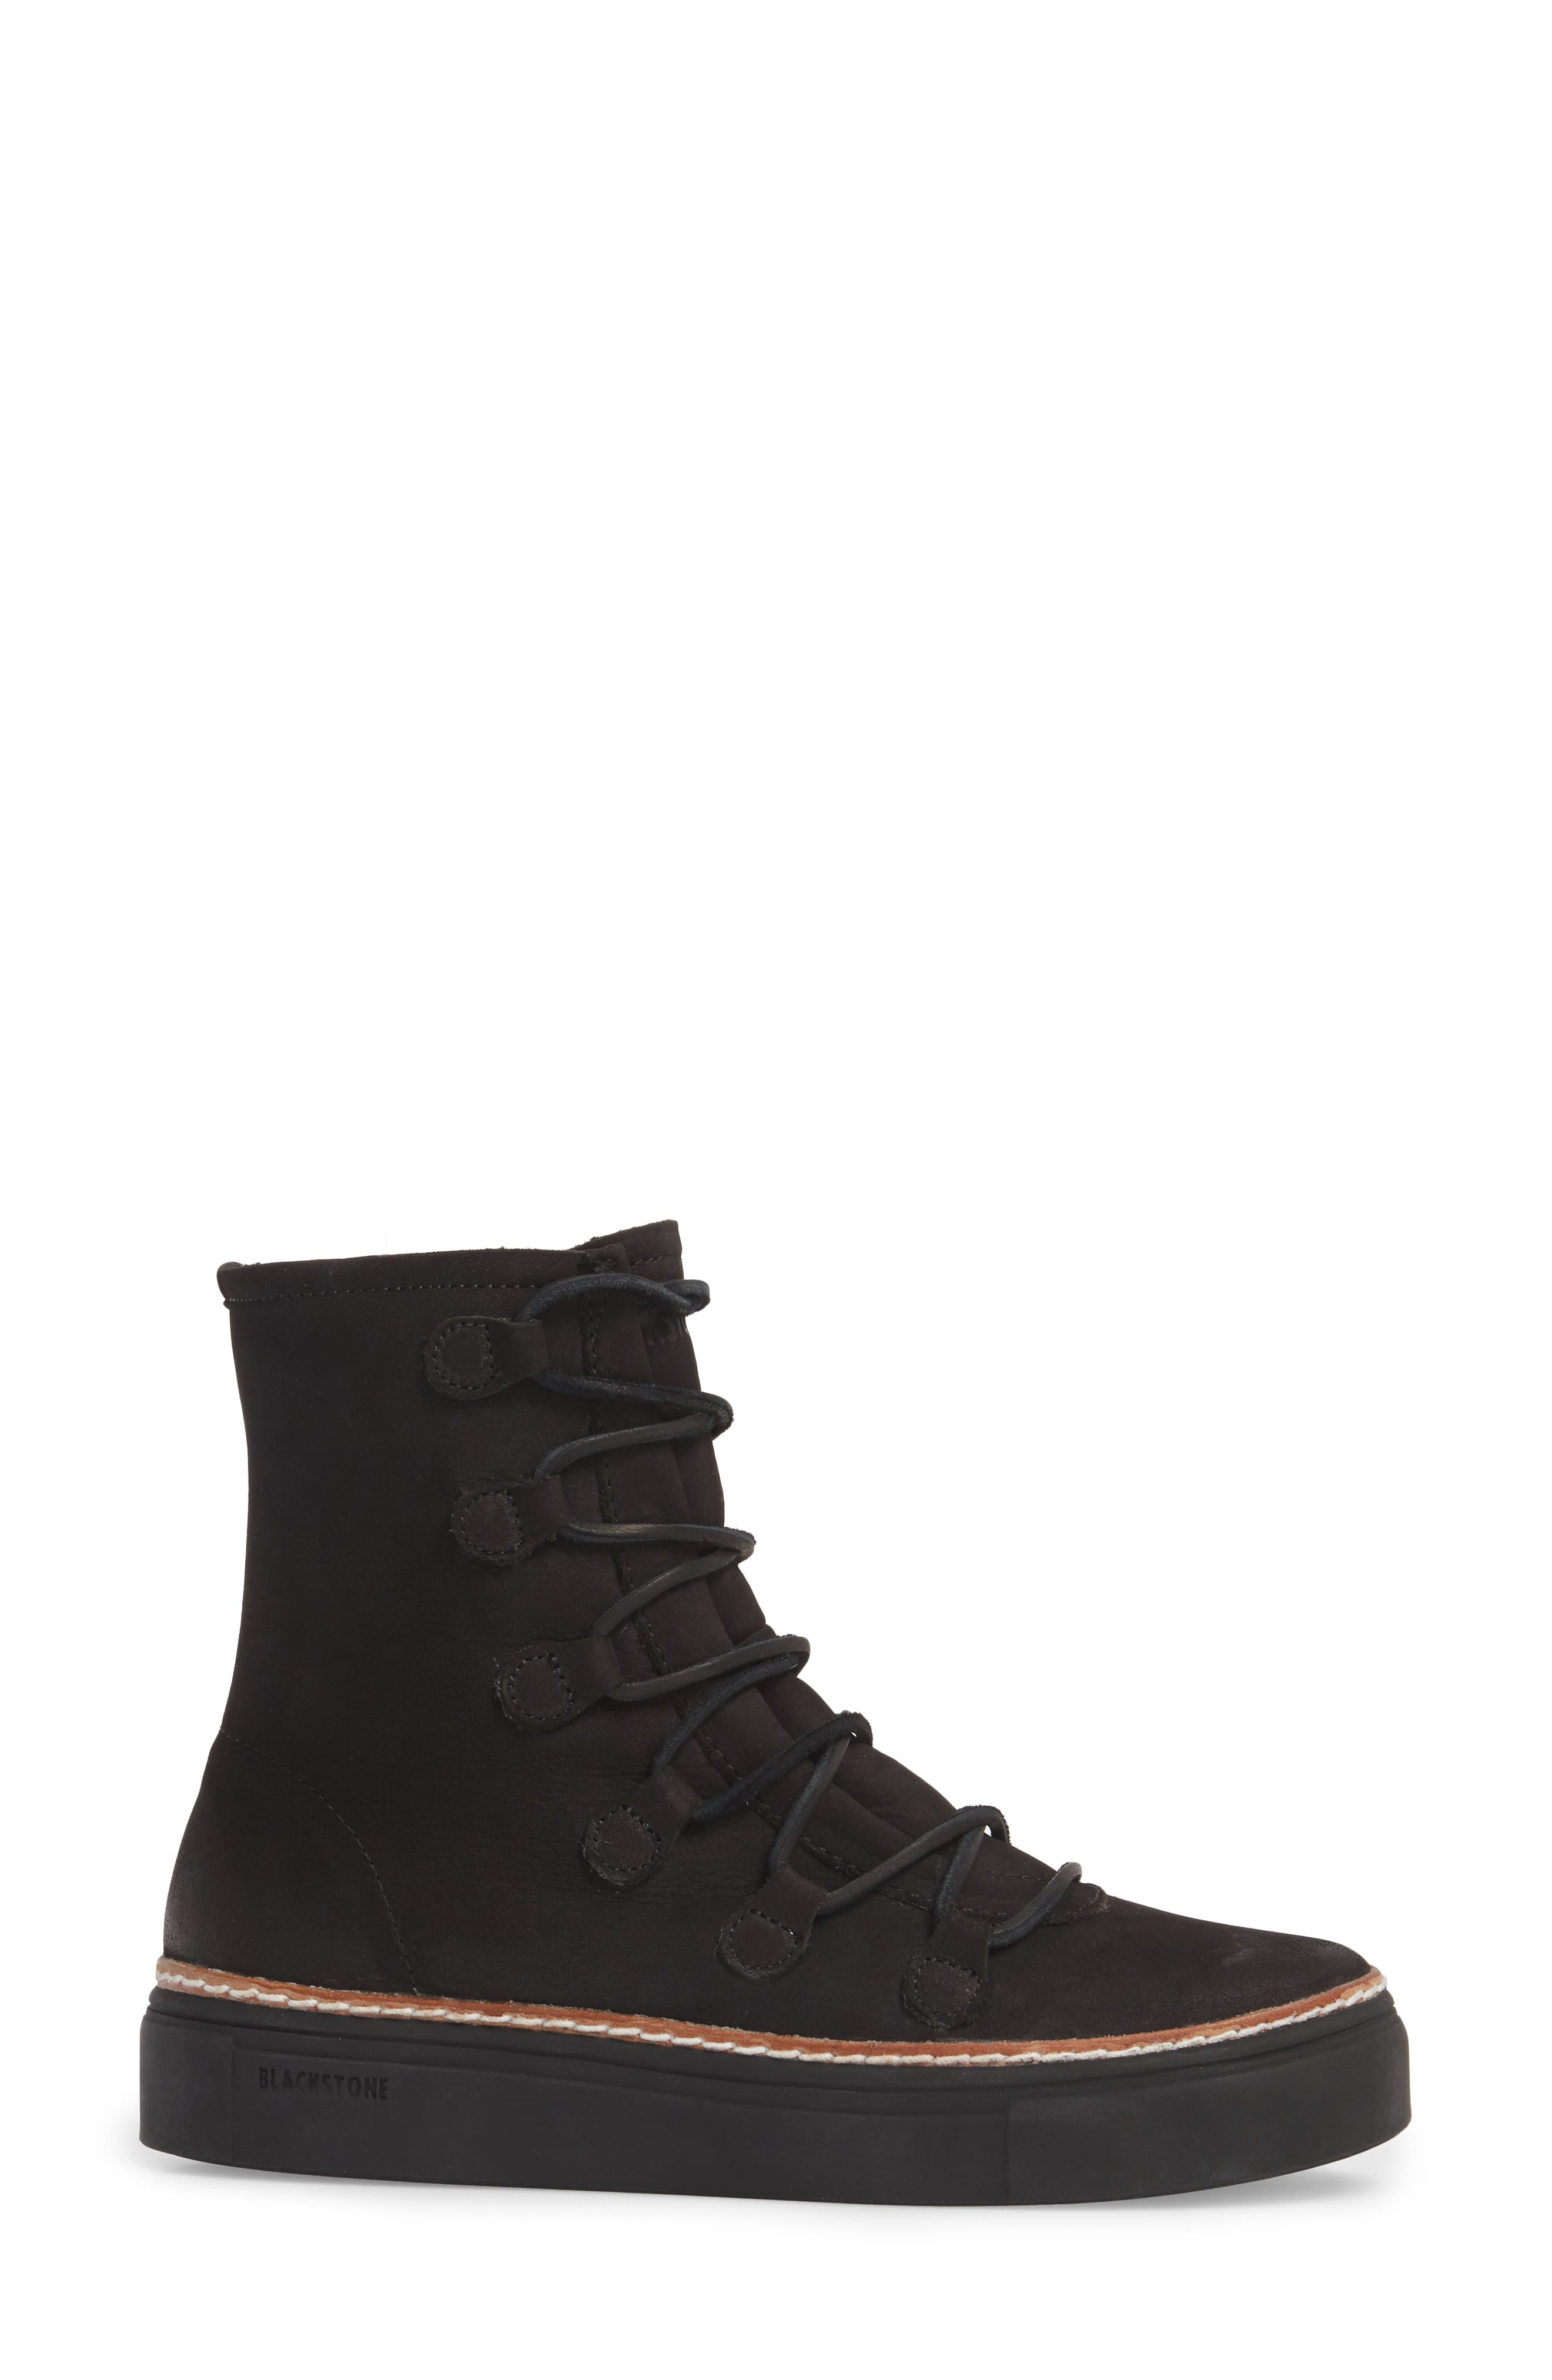 BLACKSTONE,                             OL26 Genuine Shearling Lined Lace-Up Bootie,                             Alternate thumbnail 3, color,                             BLACK NUBUCK LEATHER